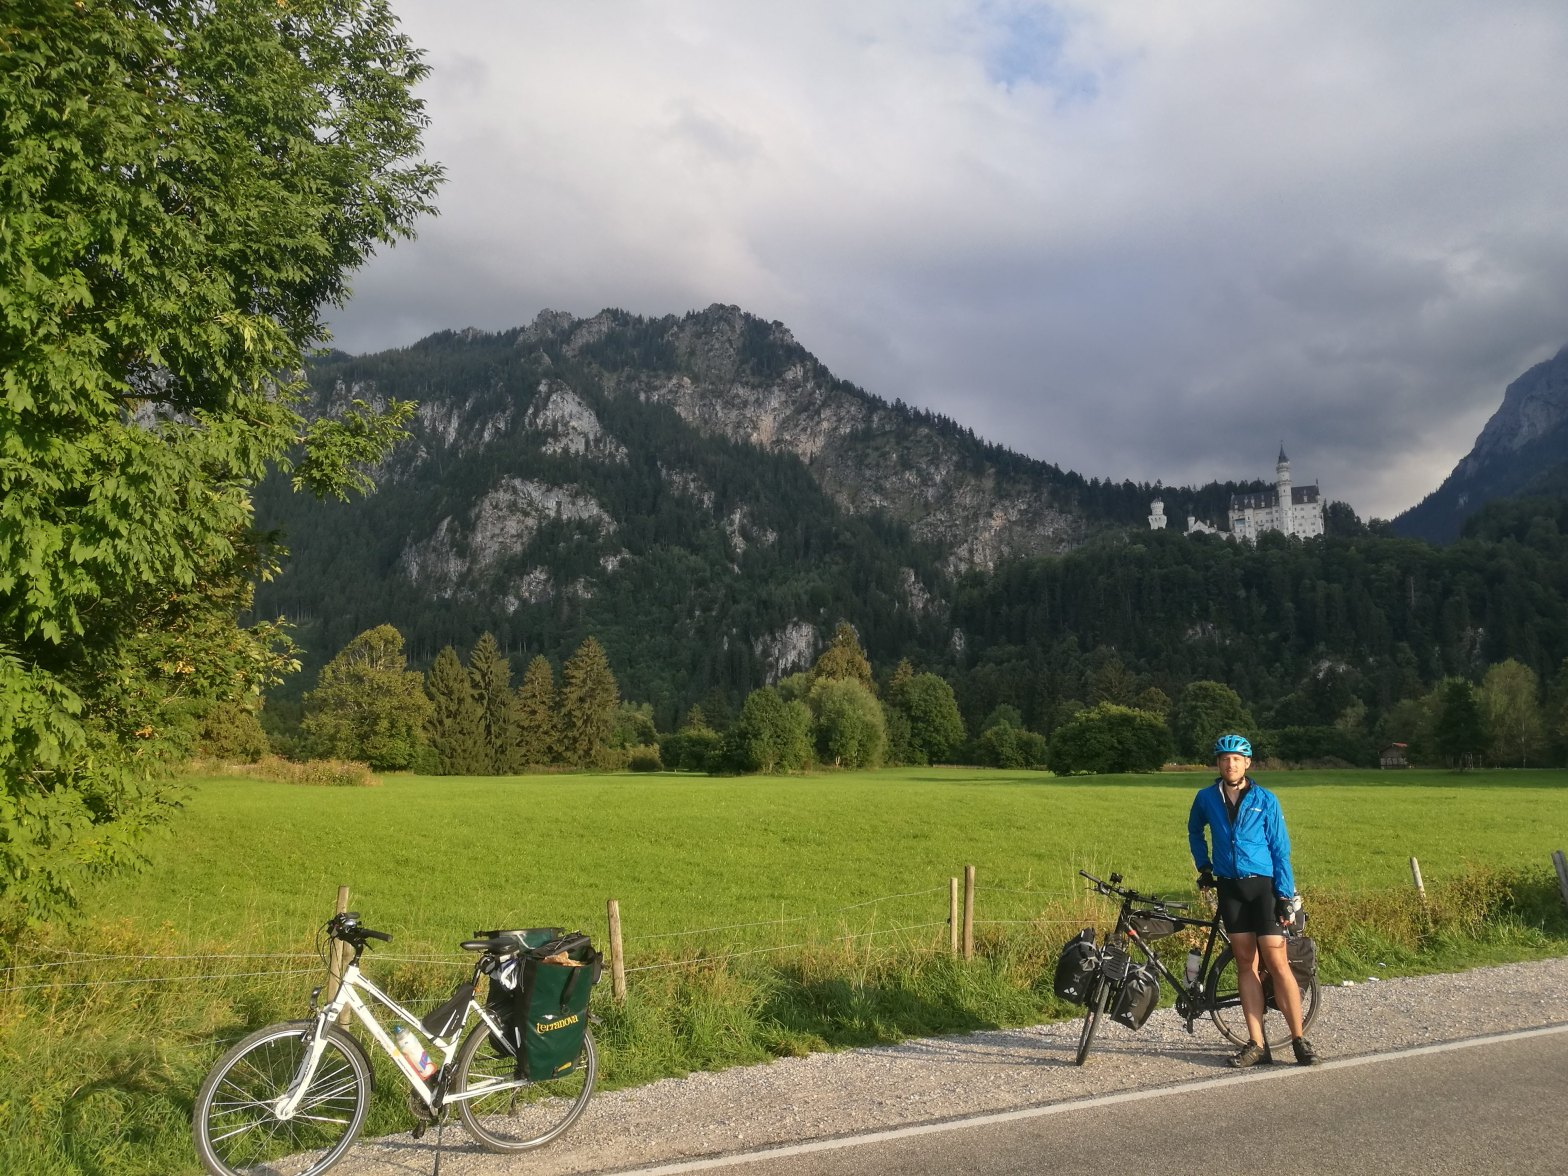 Neuschwanstein in the background